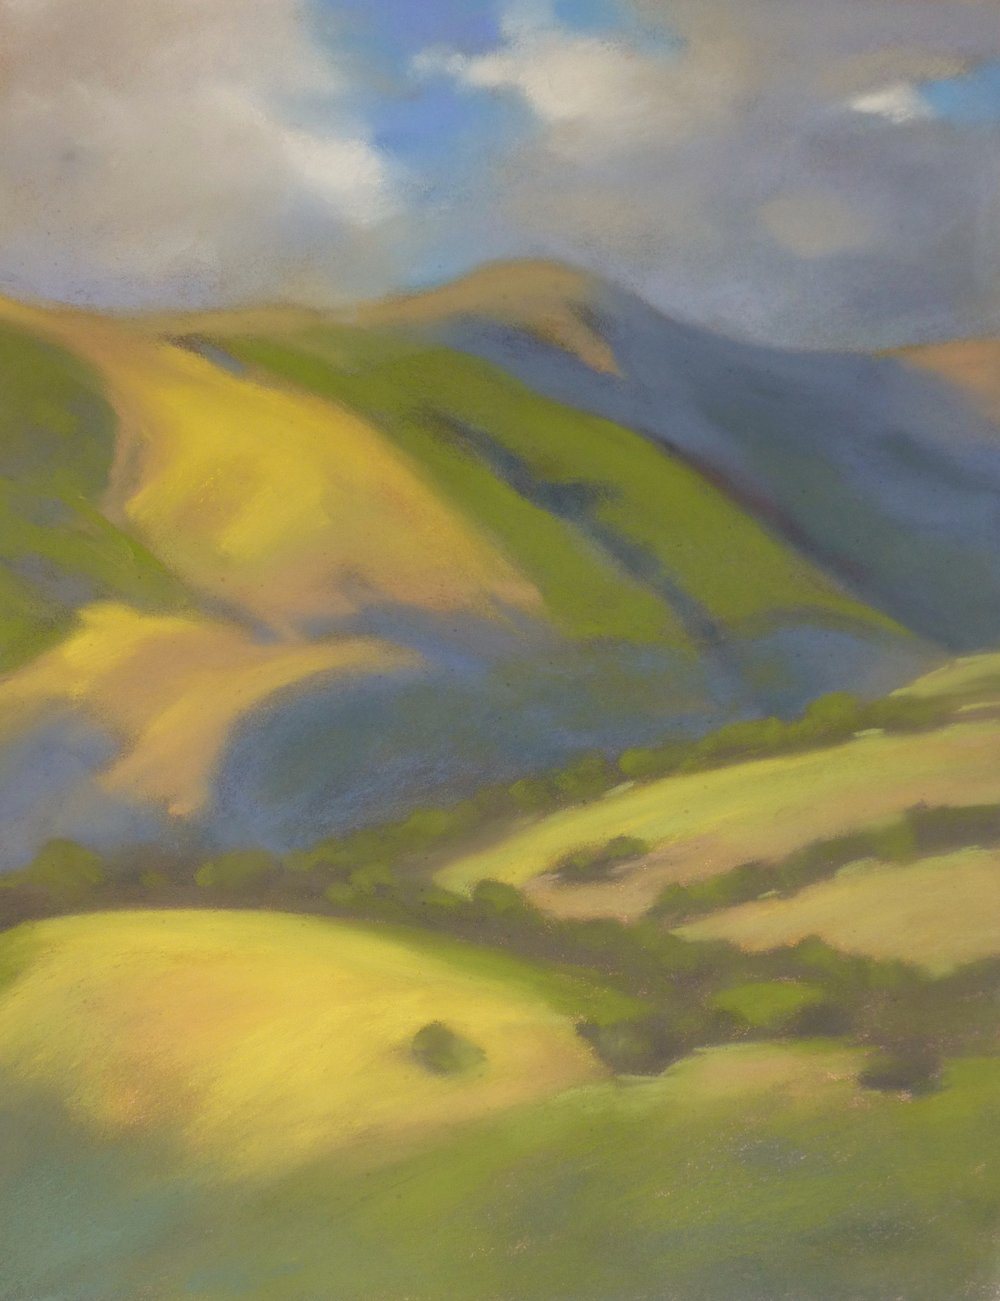 Changing Seasons | Pastel on Copper, 14 x 18 in | 25.25 x 29.5 in framed | $1,300